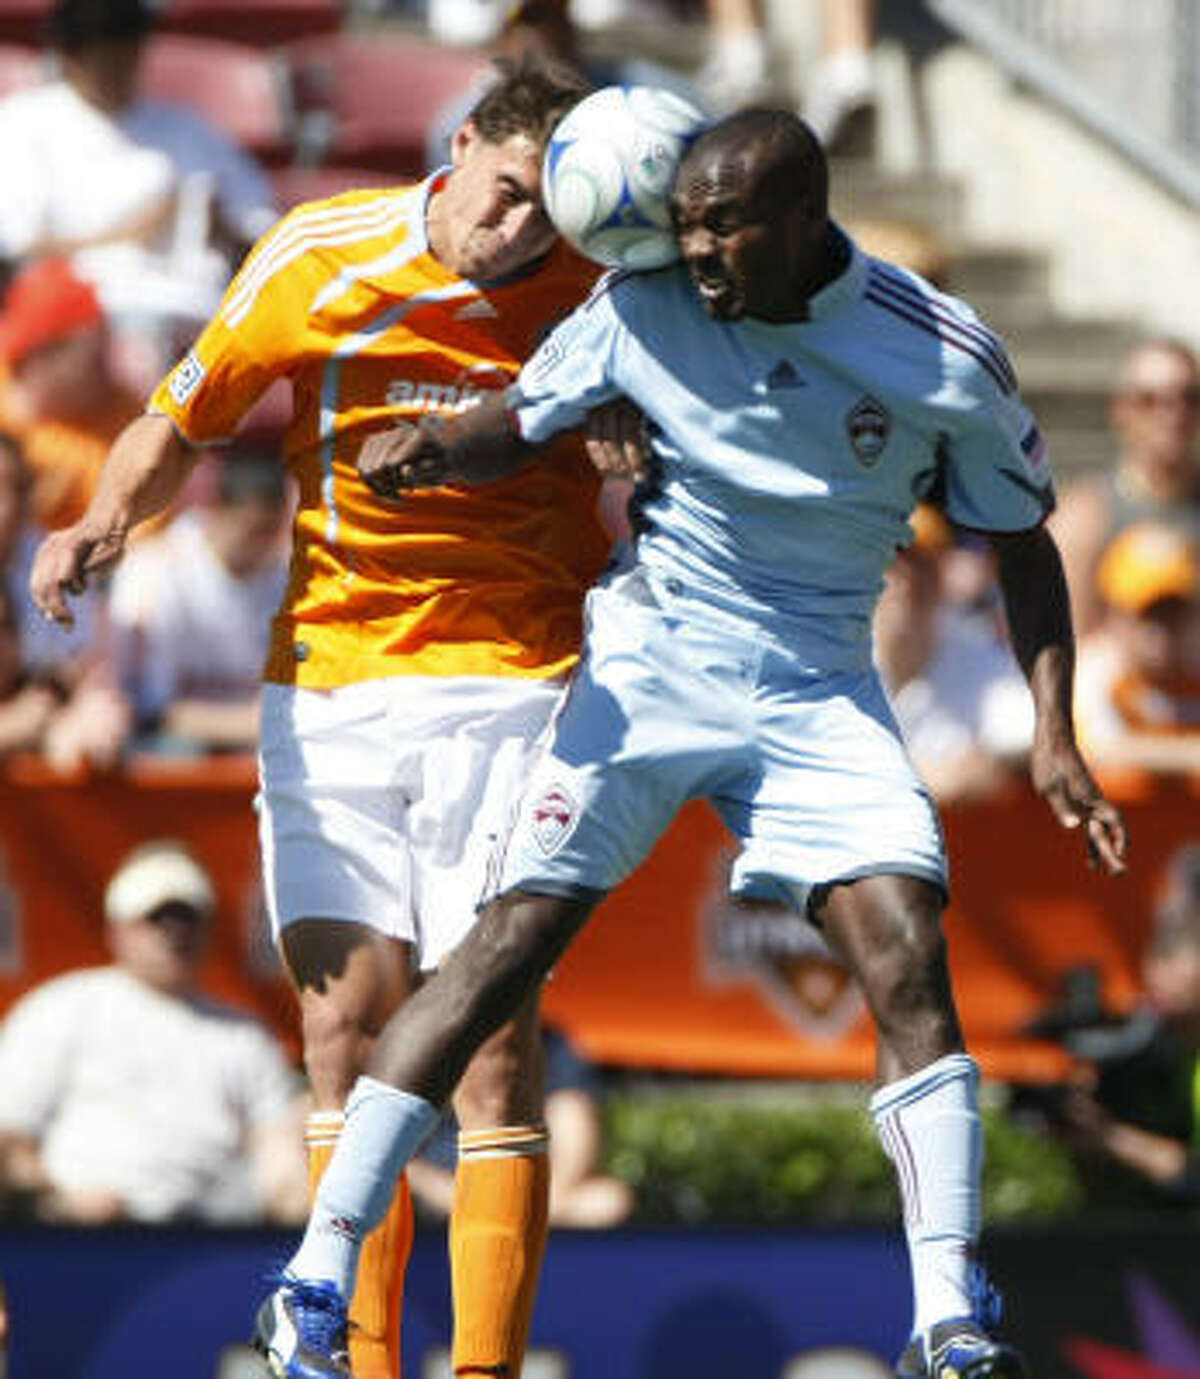 Houston Dynamo defender Geoff Cameron, left, and Colorado Rapids forward Omar Cummings battle for the ball in mid air during a game between the Houston Dynamo and the Colorado Rapids.